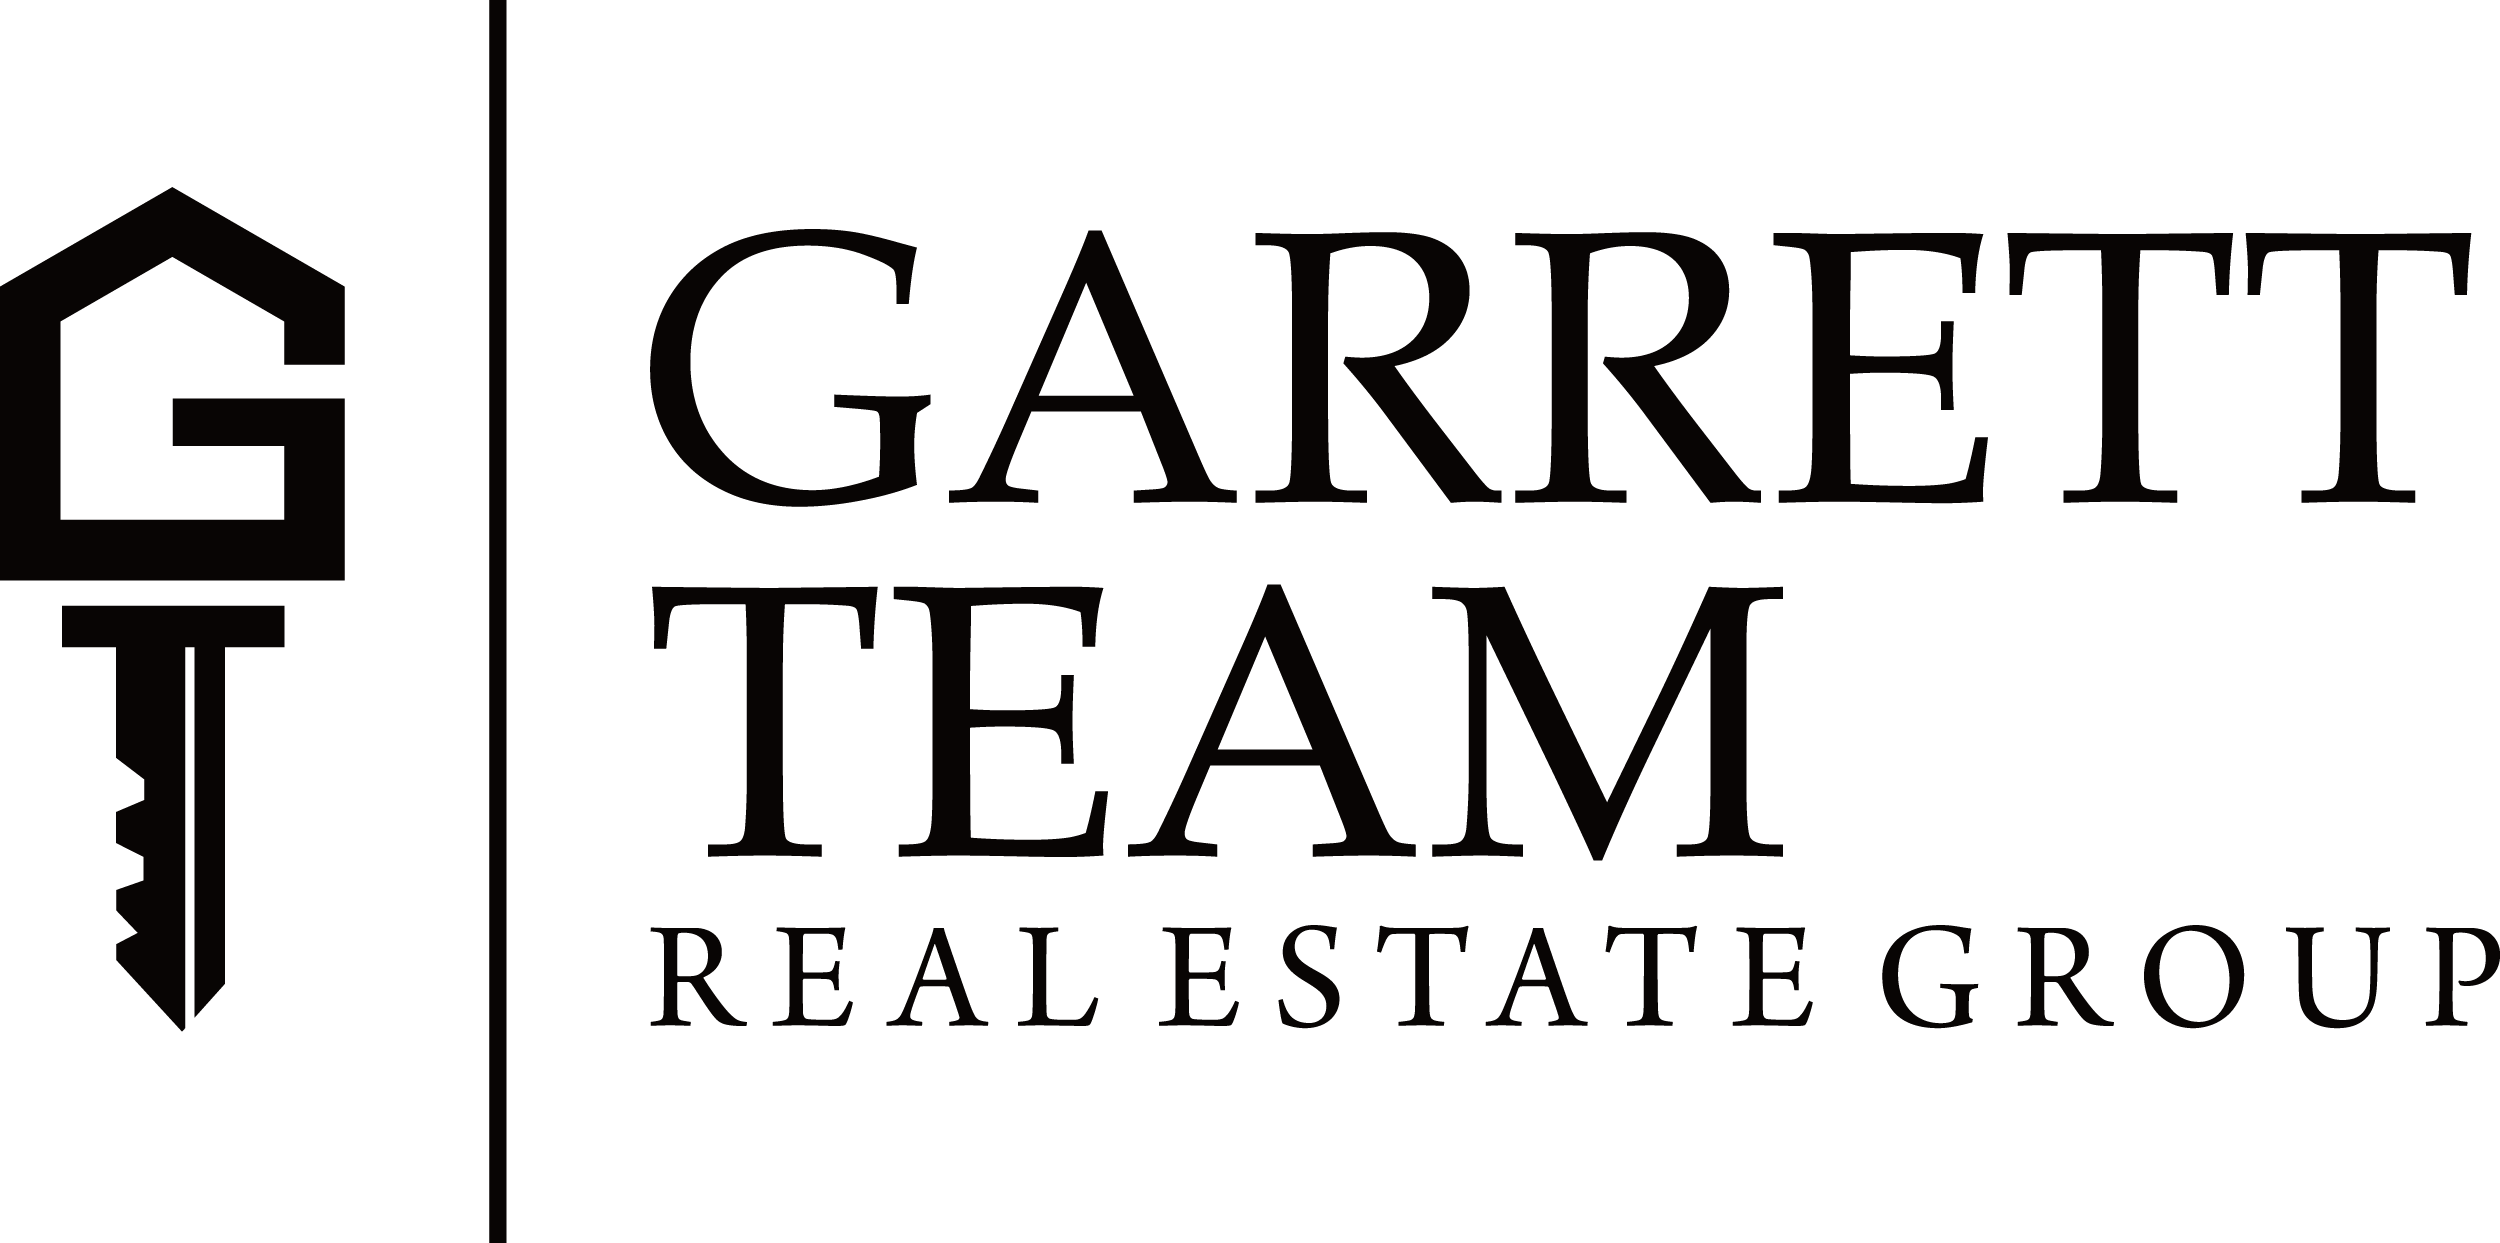 Innovative Real Estate Team in need of a powerful new logo